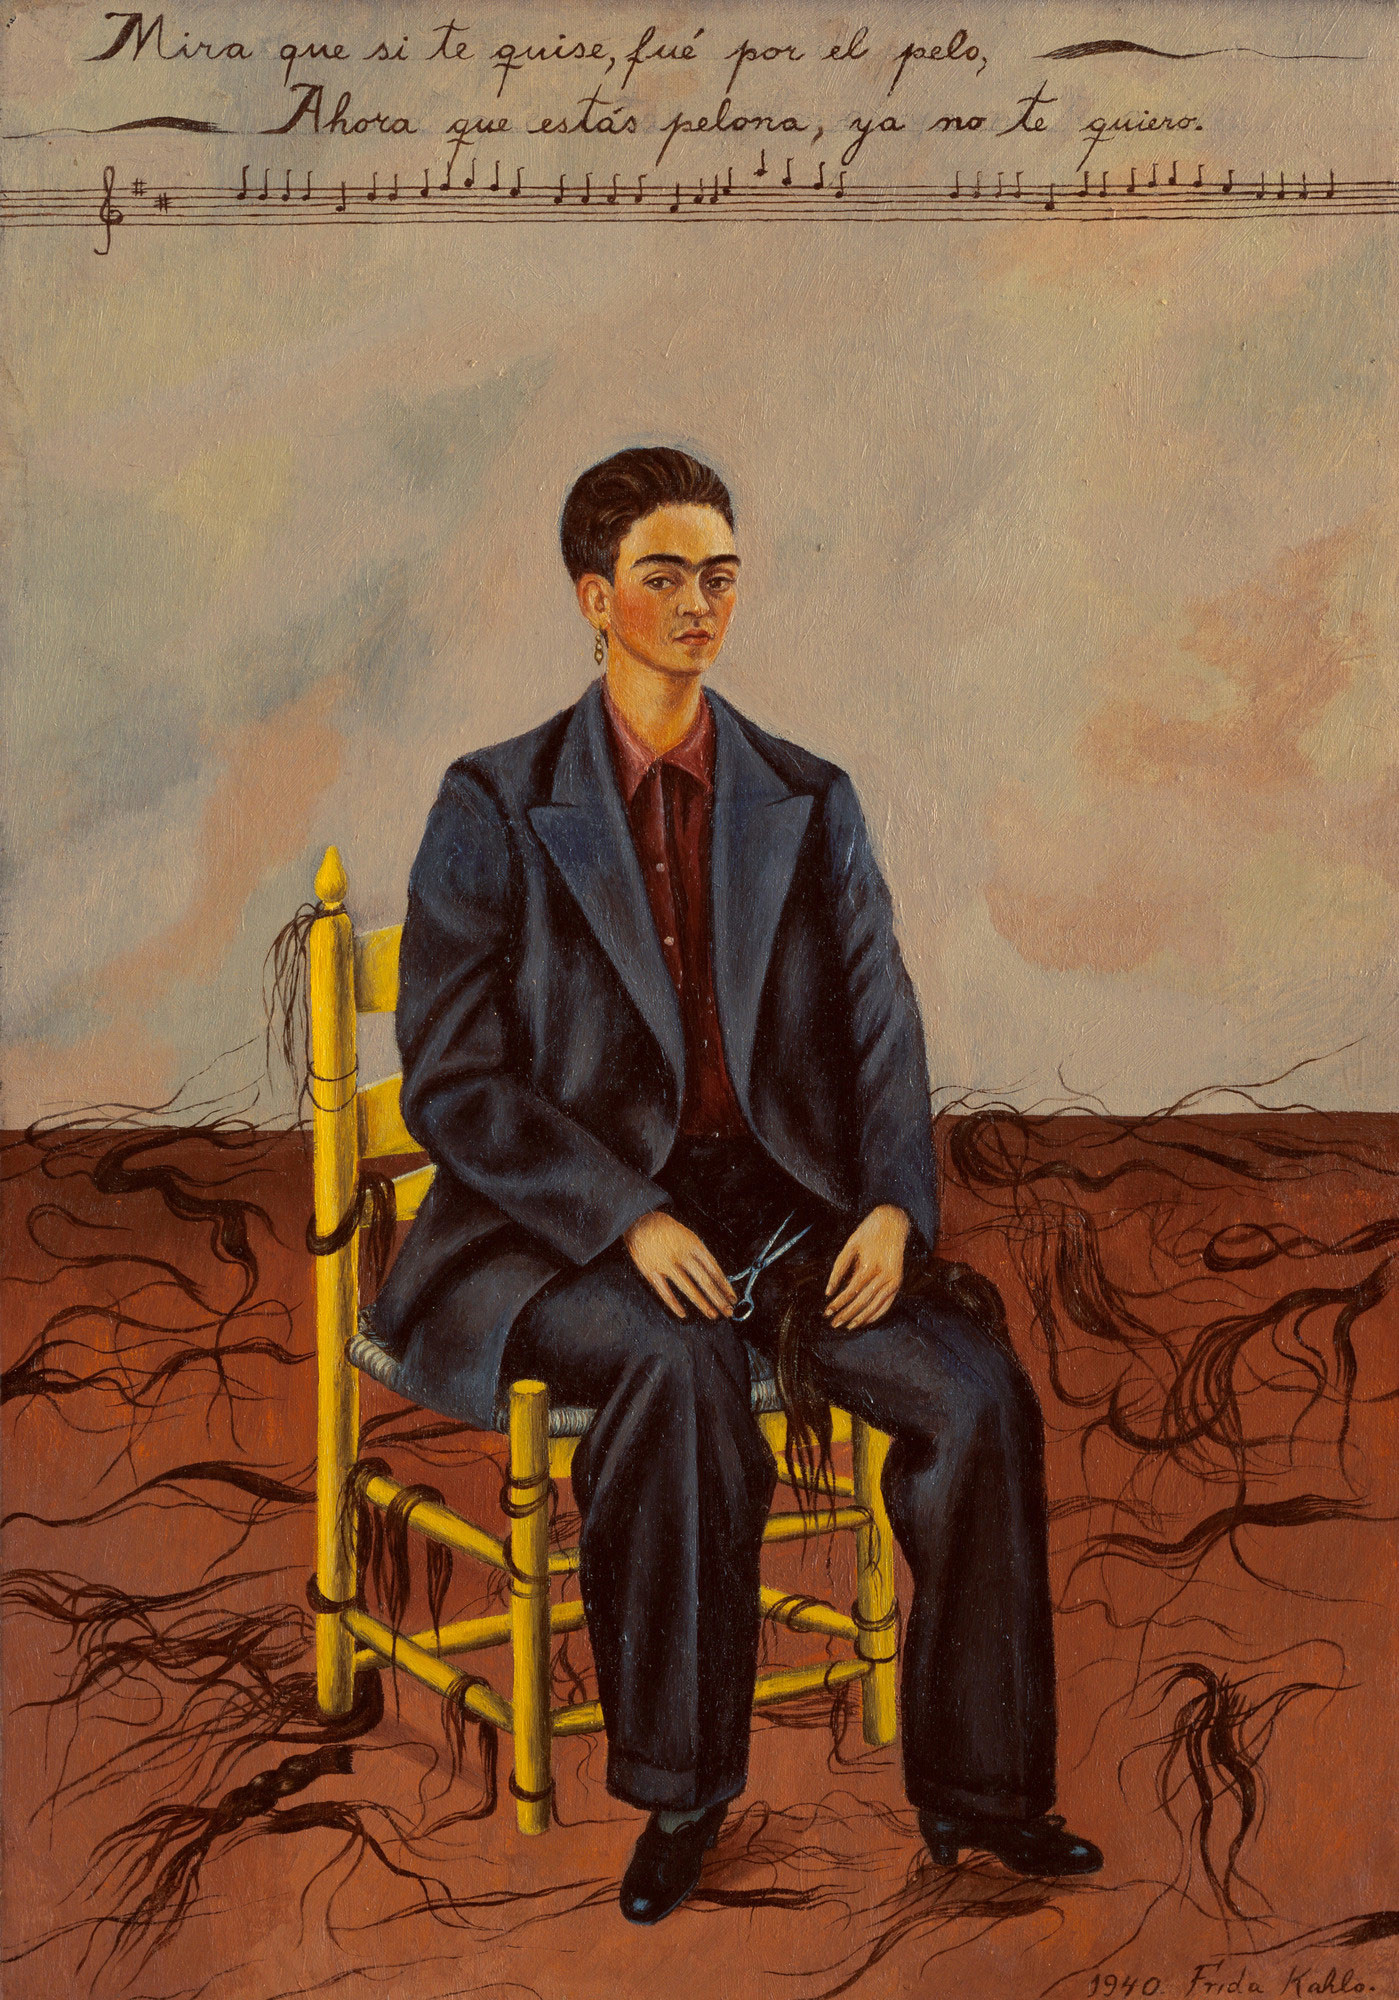 "Oil on canvas, 15 3/4 x 11"" (40 x 27.9 cm). Gift of Edgar Kaufmann, Jr. © 2018 Banco de México Diego Rivera Frida Kahlo Museums Trust, Mexico, D.F./Artists Rights Society (ARS), New York"